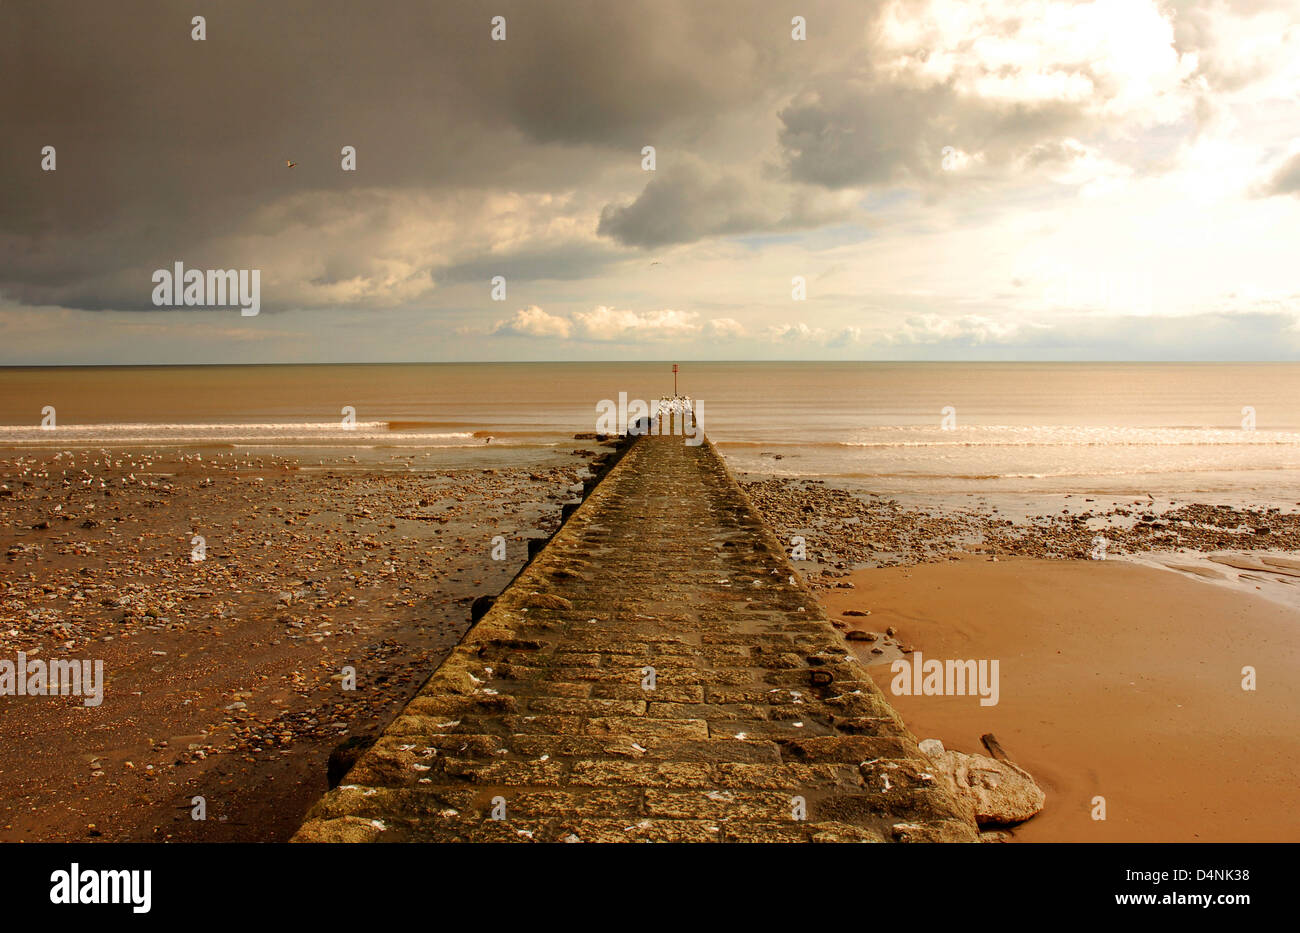 Winter beach scene - seawall leading down to waves - strong visual lines - dramatic storm threat clouds. - Stock Image